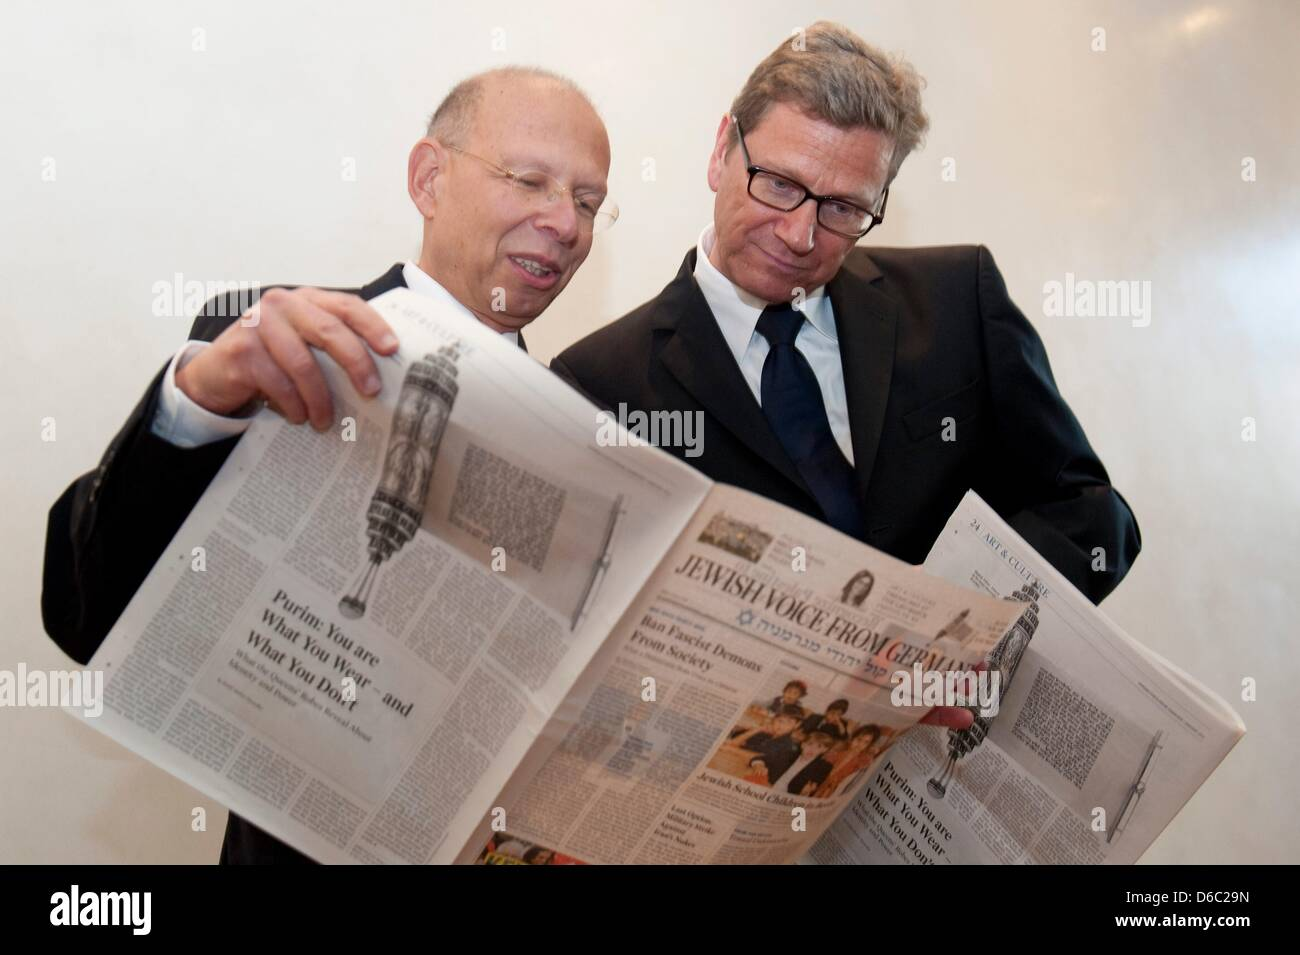 Publicist Rafael Seligmann (L) and Germany Foreign Minister Guido Westerwelle leaf through the first edition - Stock Image